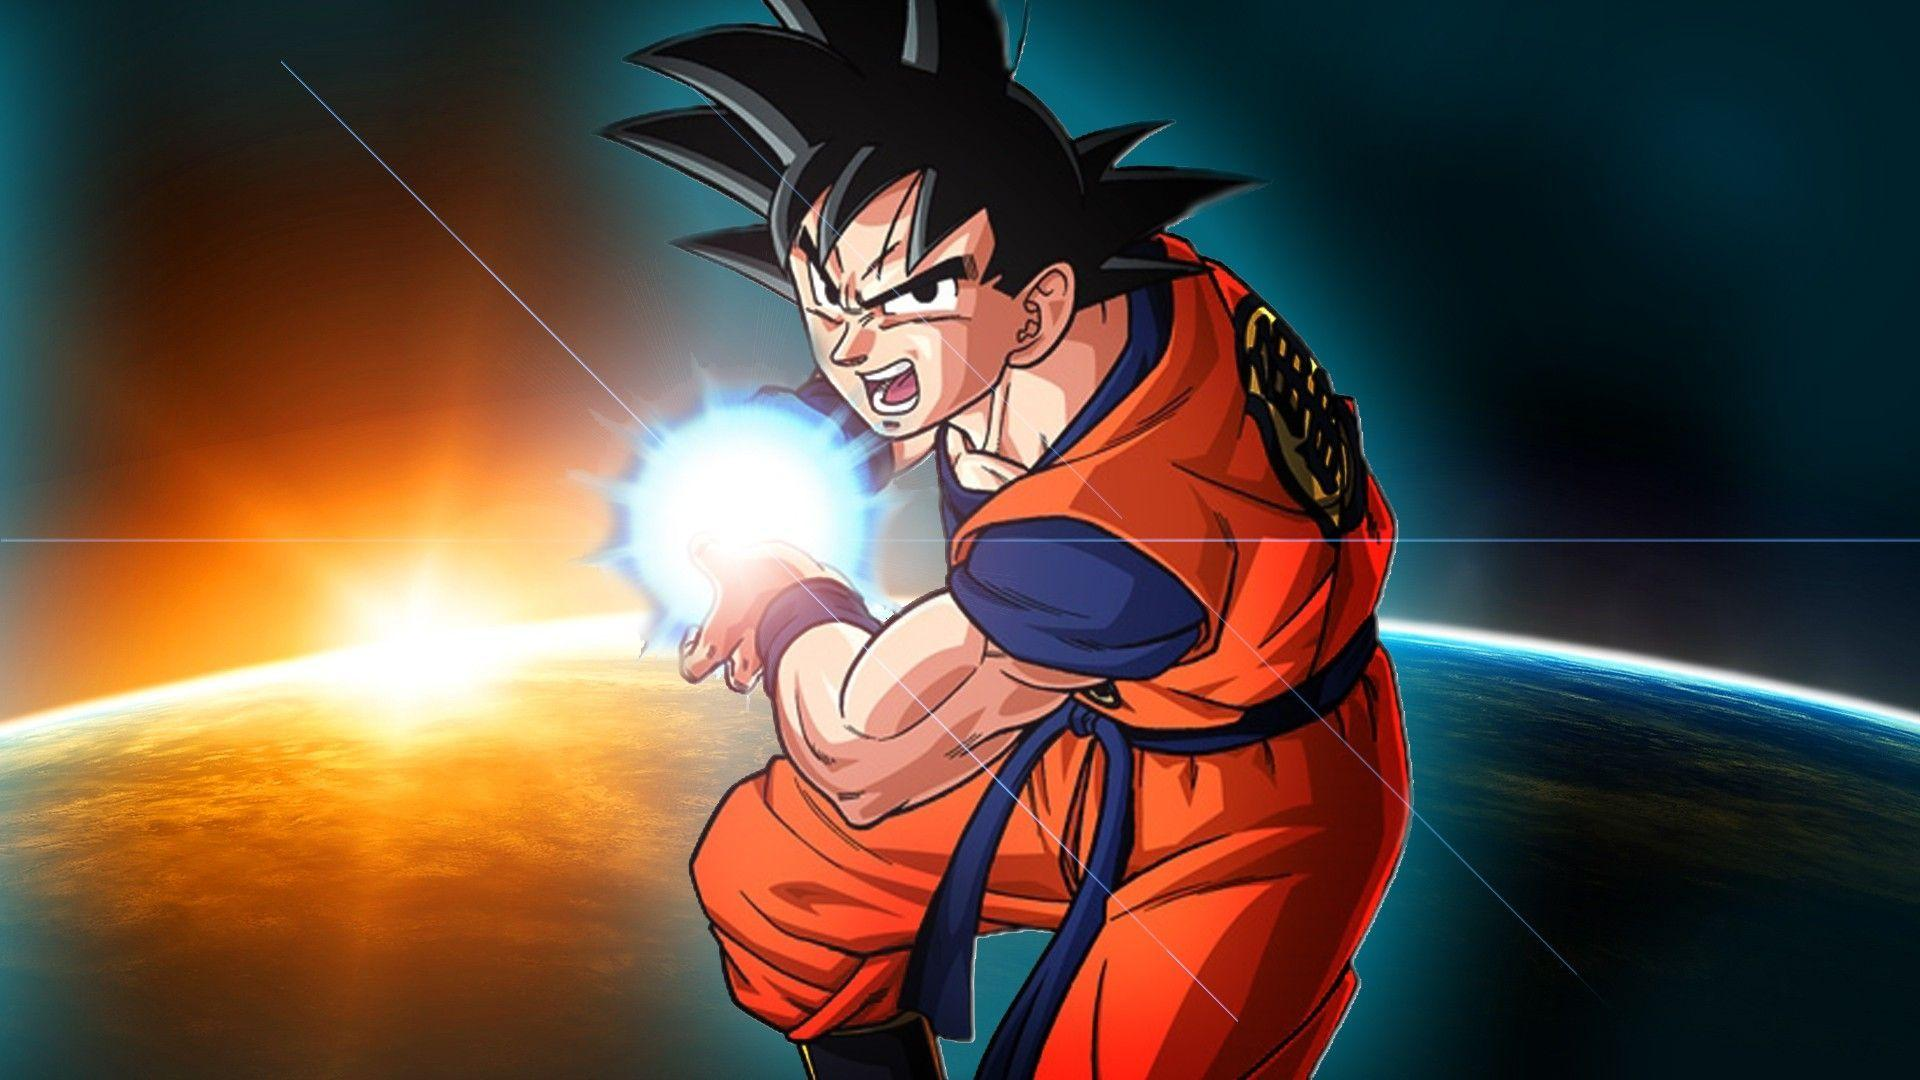 Wallpapers Of Goku - Wallpaper Cave